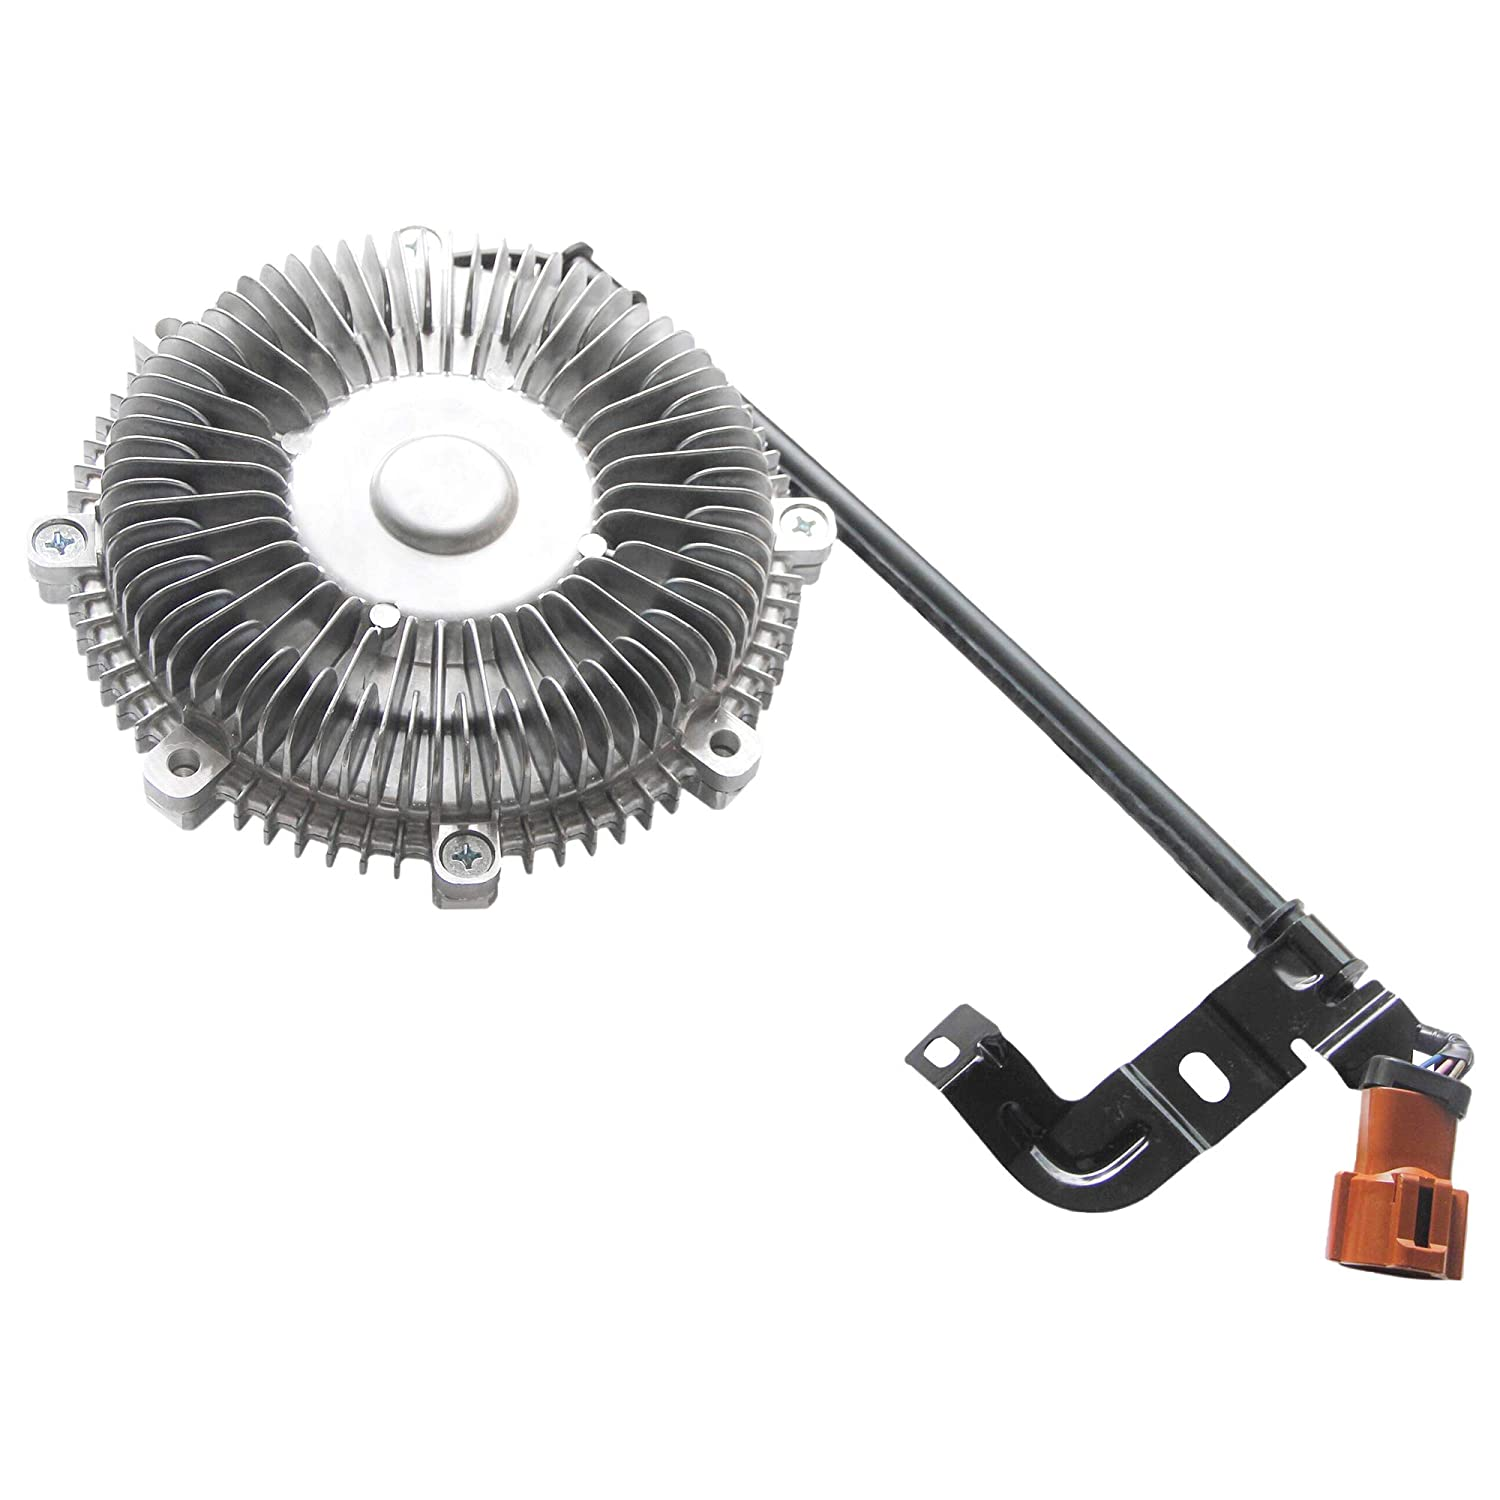 2007-2010 Ford Explorer Sport Trac Replaces 7L2Z8A616A 3263 BOXI Engine Cooling Thermal Fan Clutch for 2006-2010 Ford Explorer 2006-2010 Mercury Mountaineer 4.0L V6 // 4.6L V8